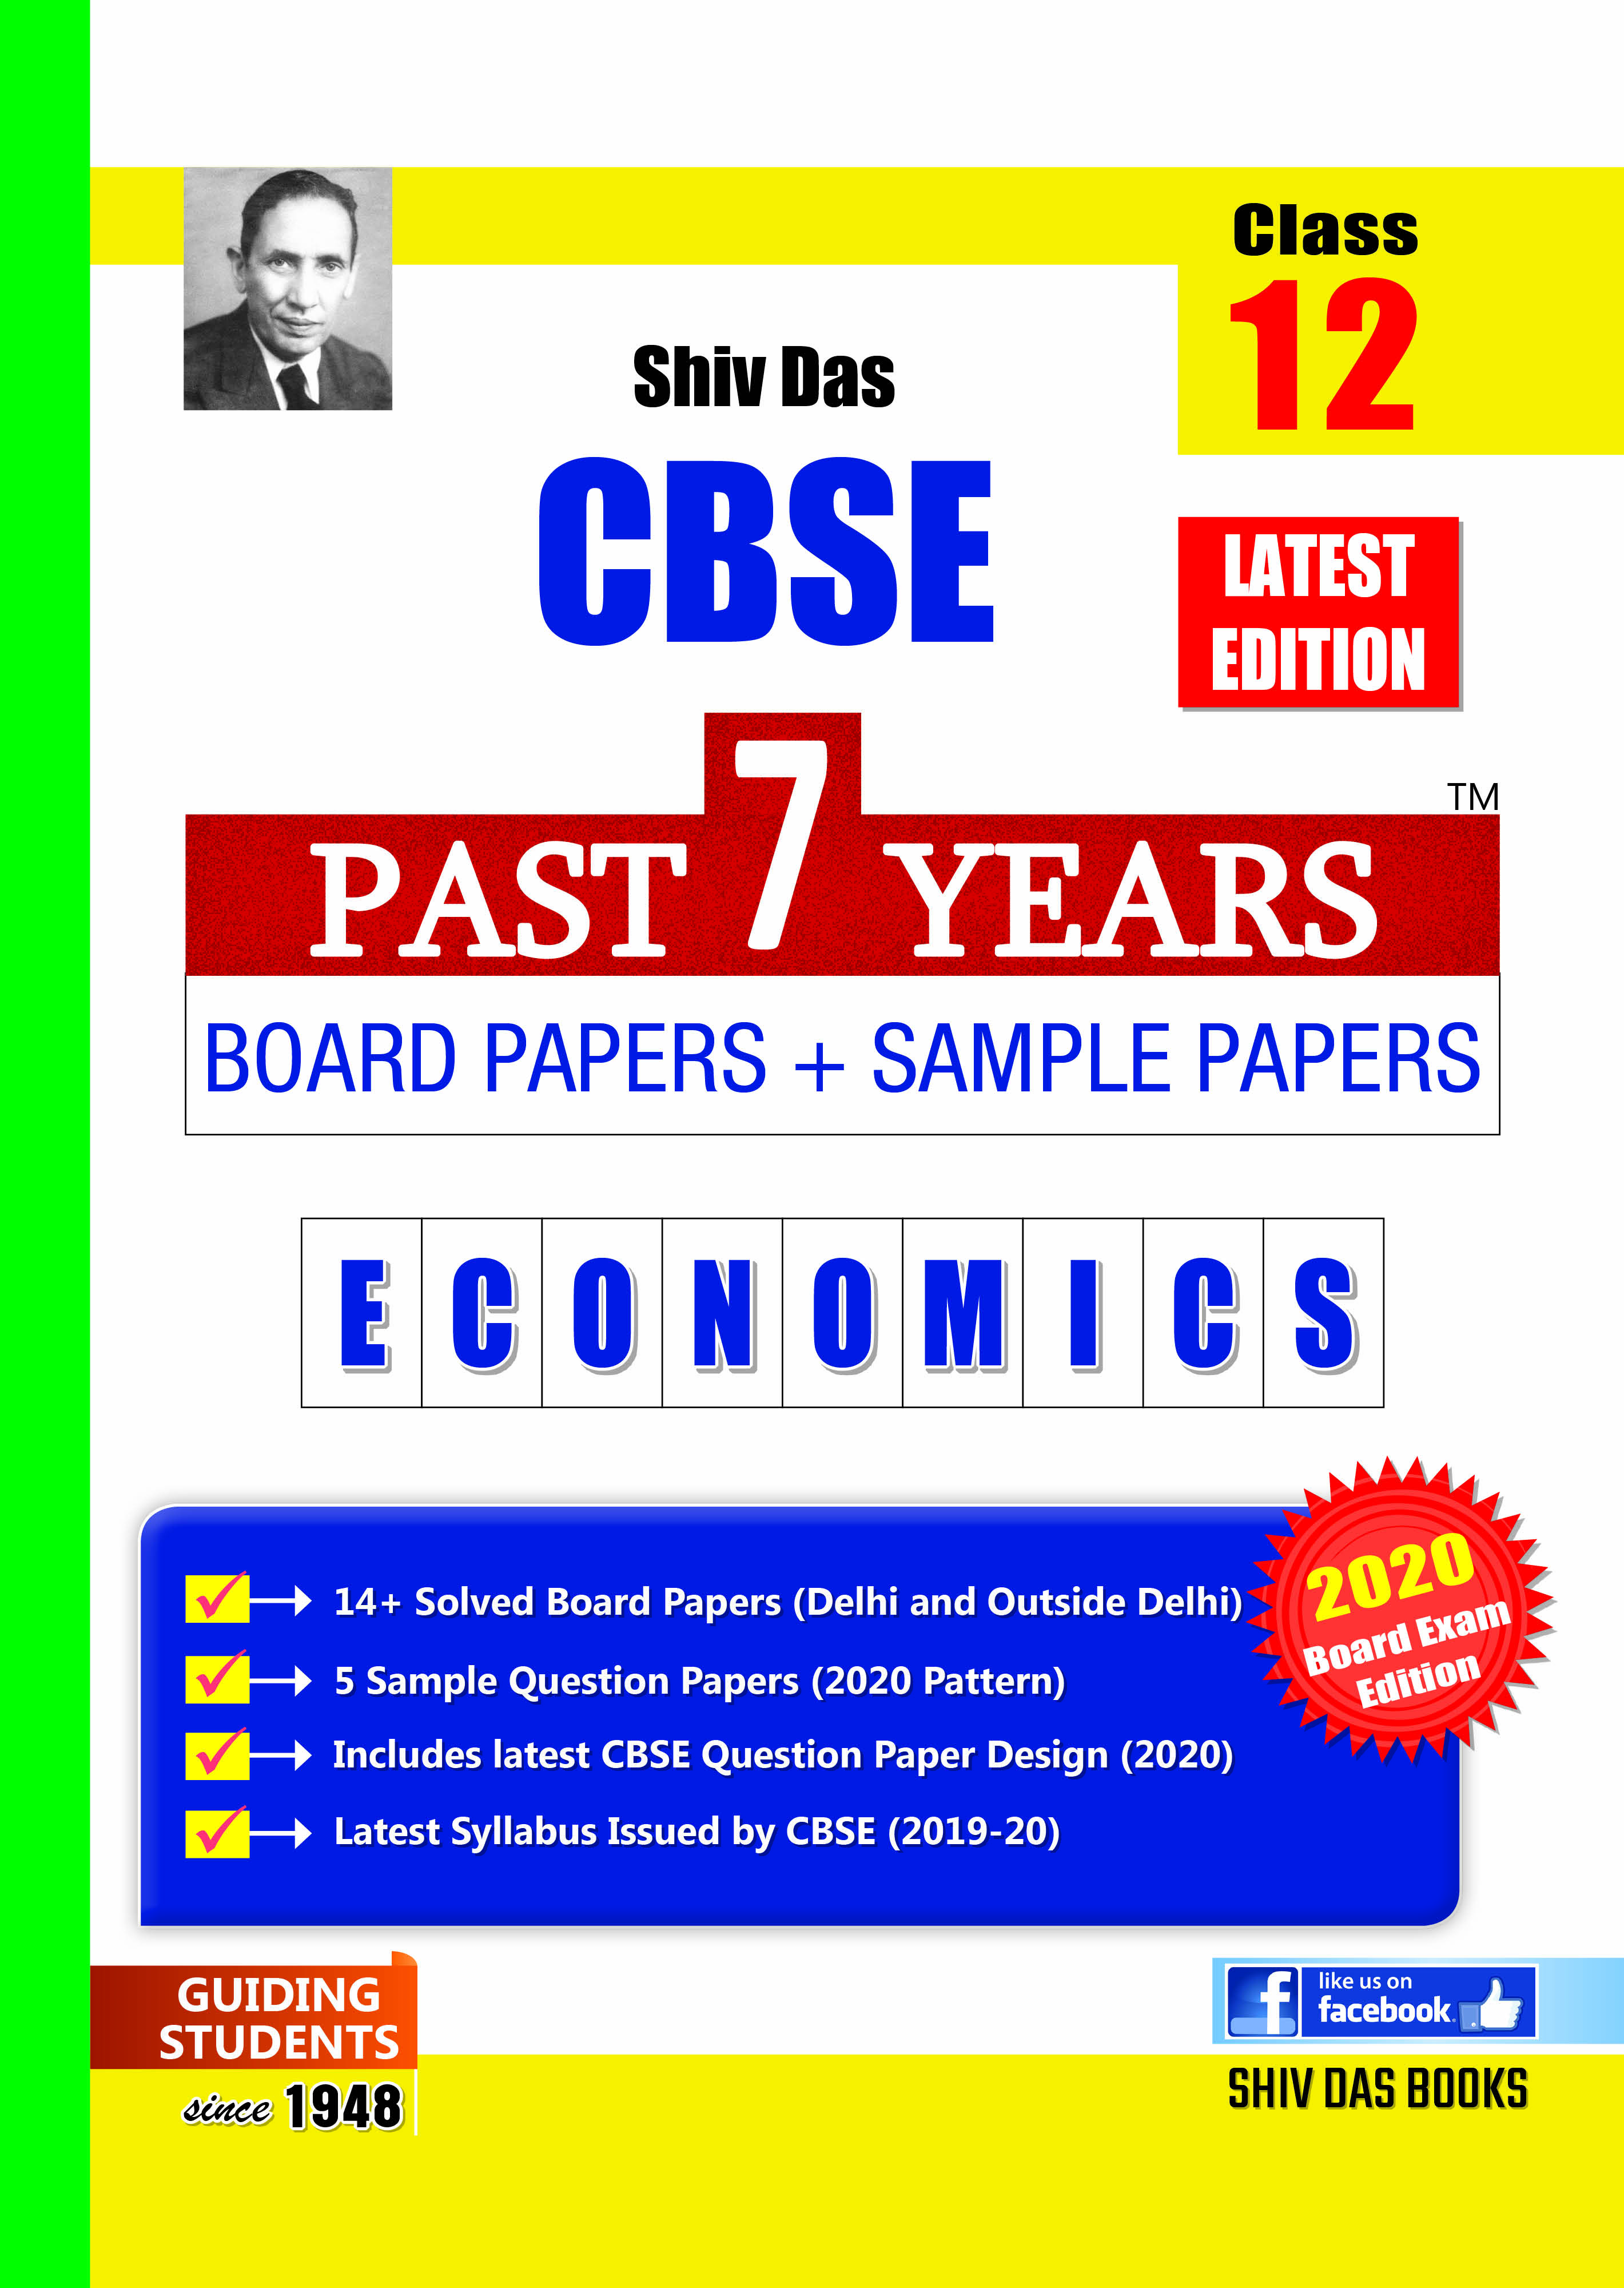 CBSE Past 7 Years Solved Board Papers + Sample Papers Series